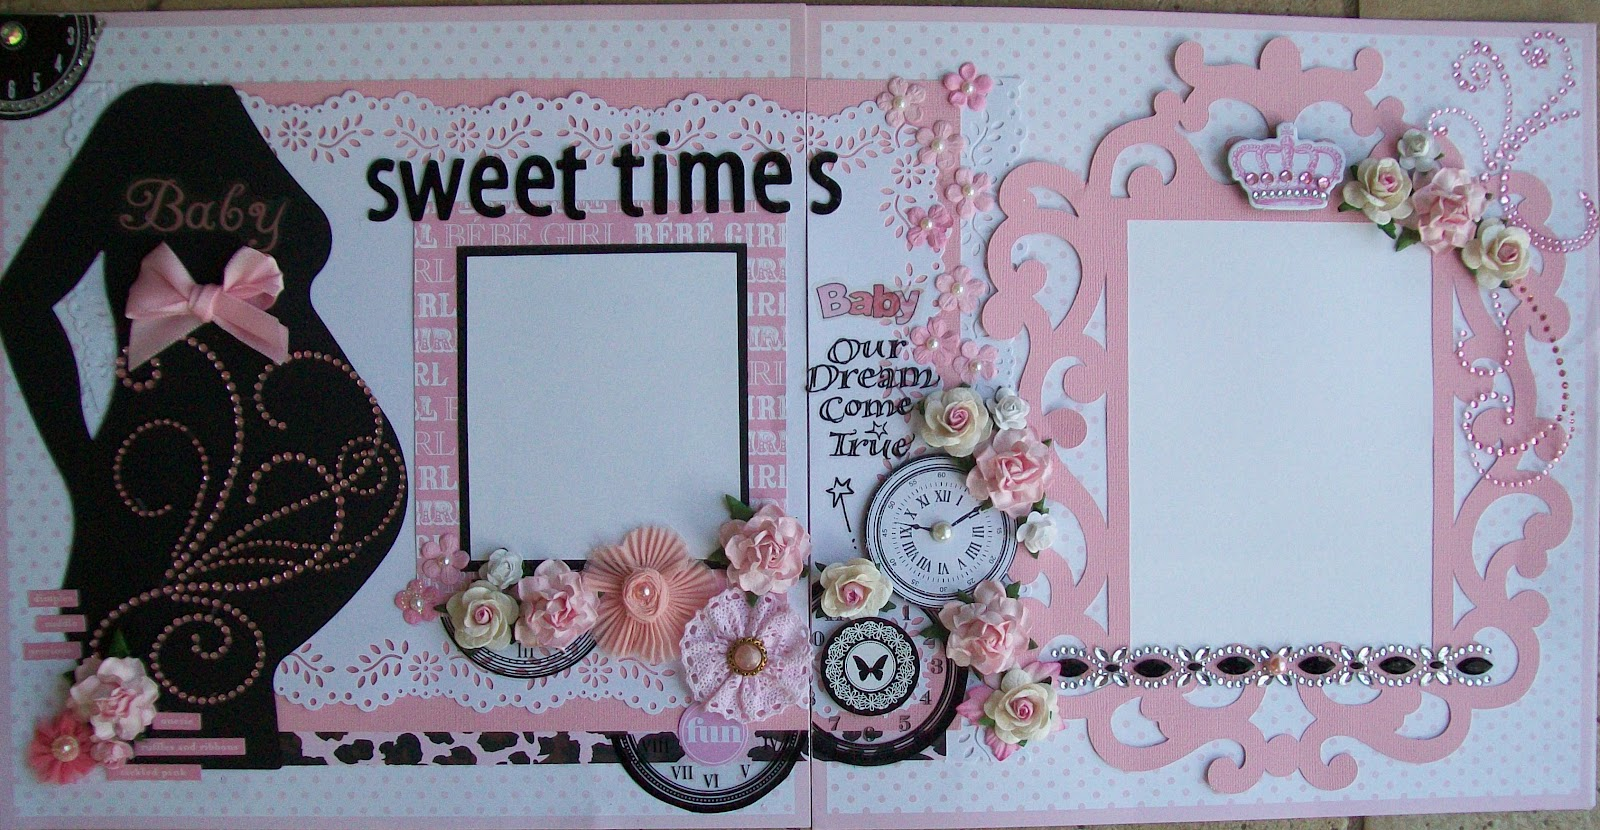 Scrapbook ideas for baby girl - These Are Some Baby Girl Layouts I Did Last Week This First One Is One Of My Favorites The Pregnant Silhouette Is From The Accucut Die And The Large Frame